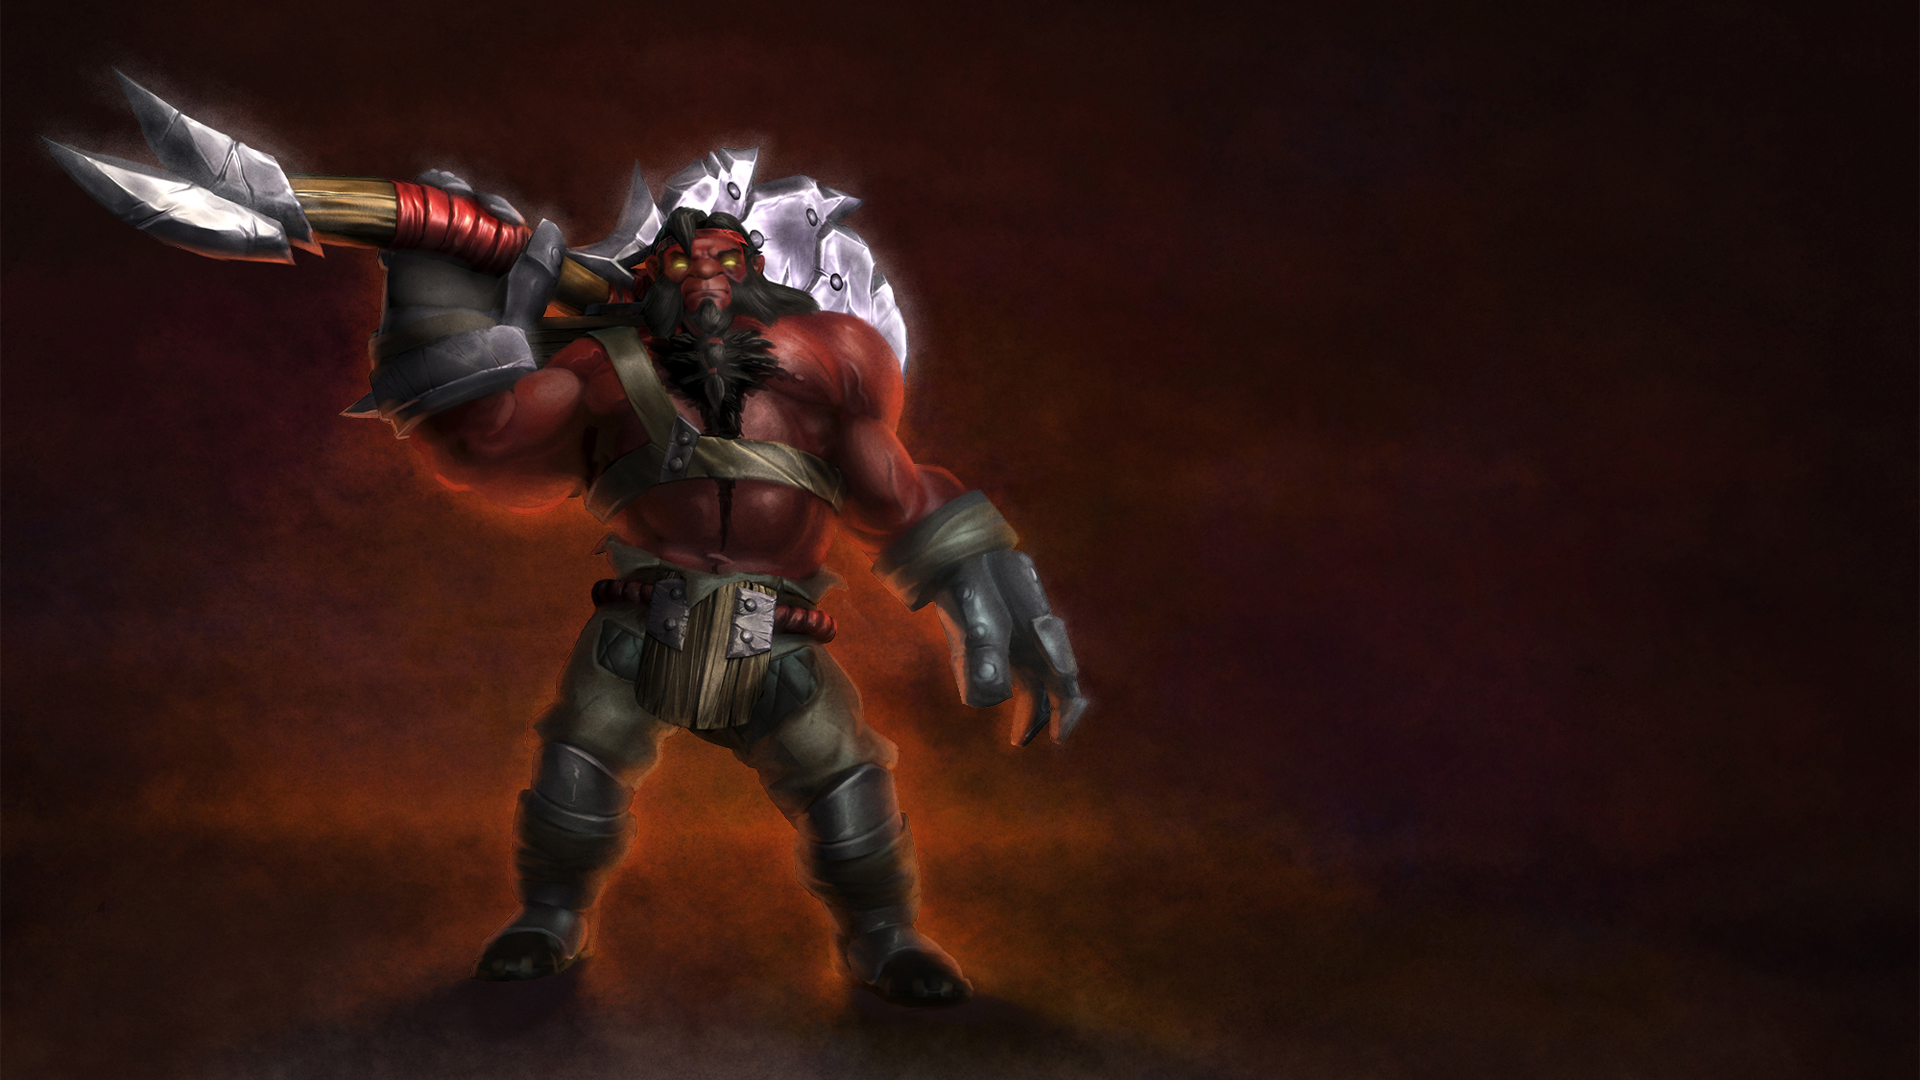 axe wallpapers dota 2 hd wallpapers 18 graphictofu